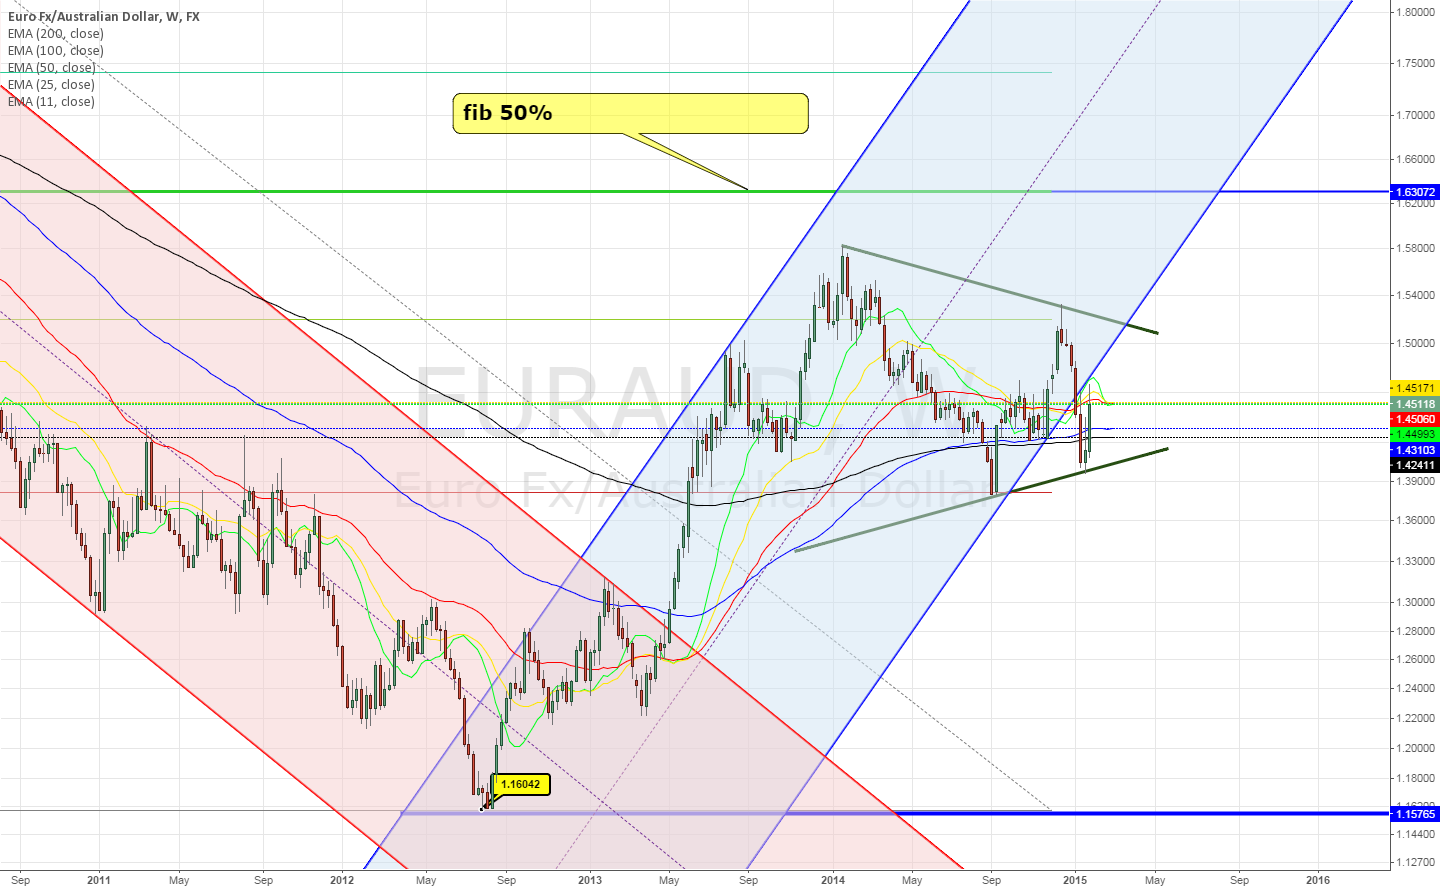 EURAUD Weekly ~ Still below 50 fib